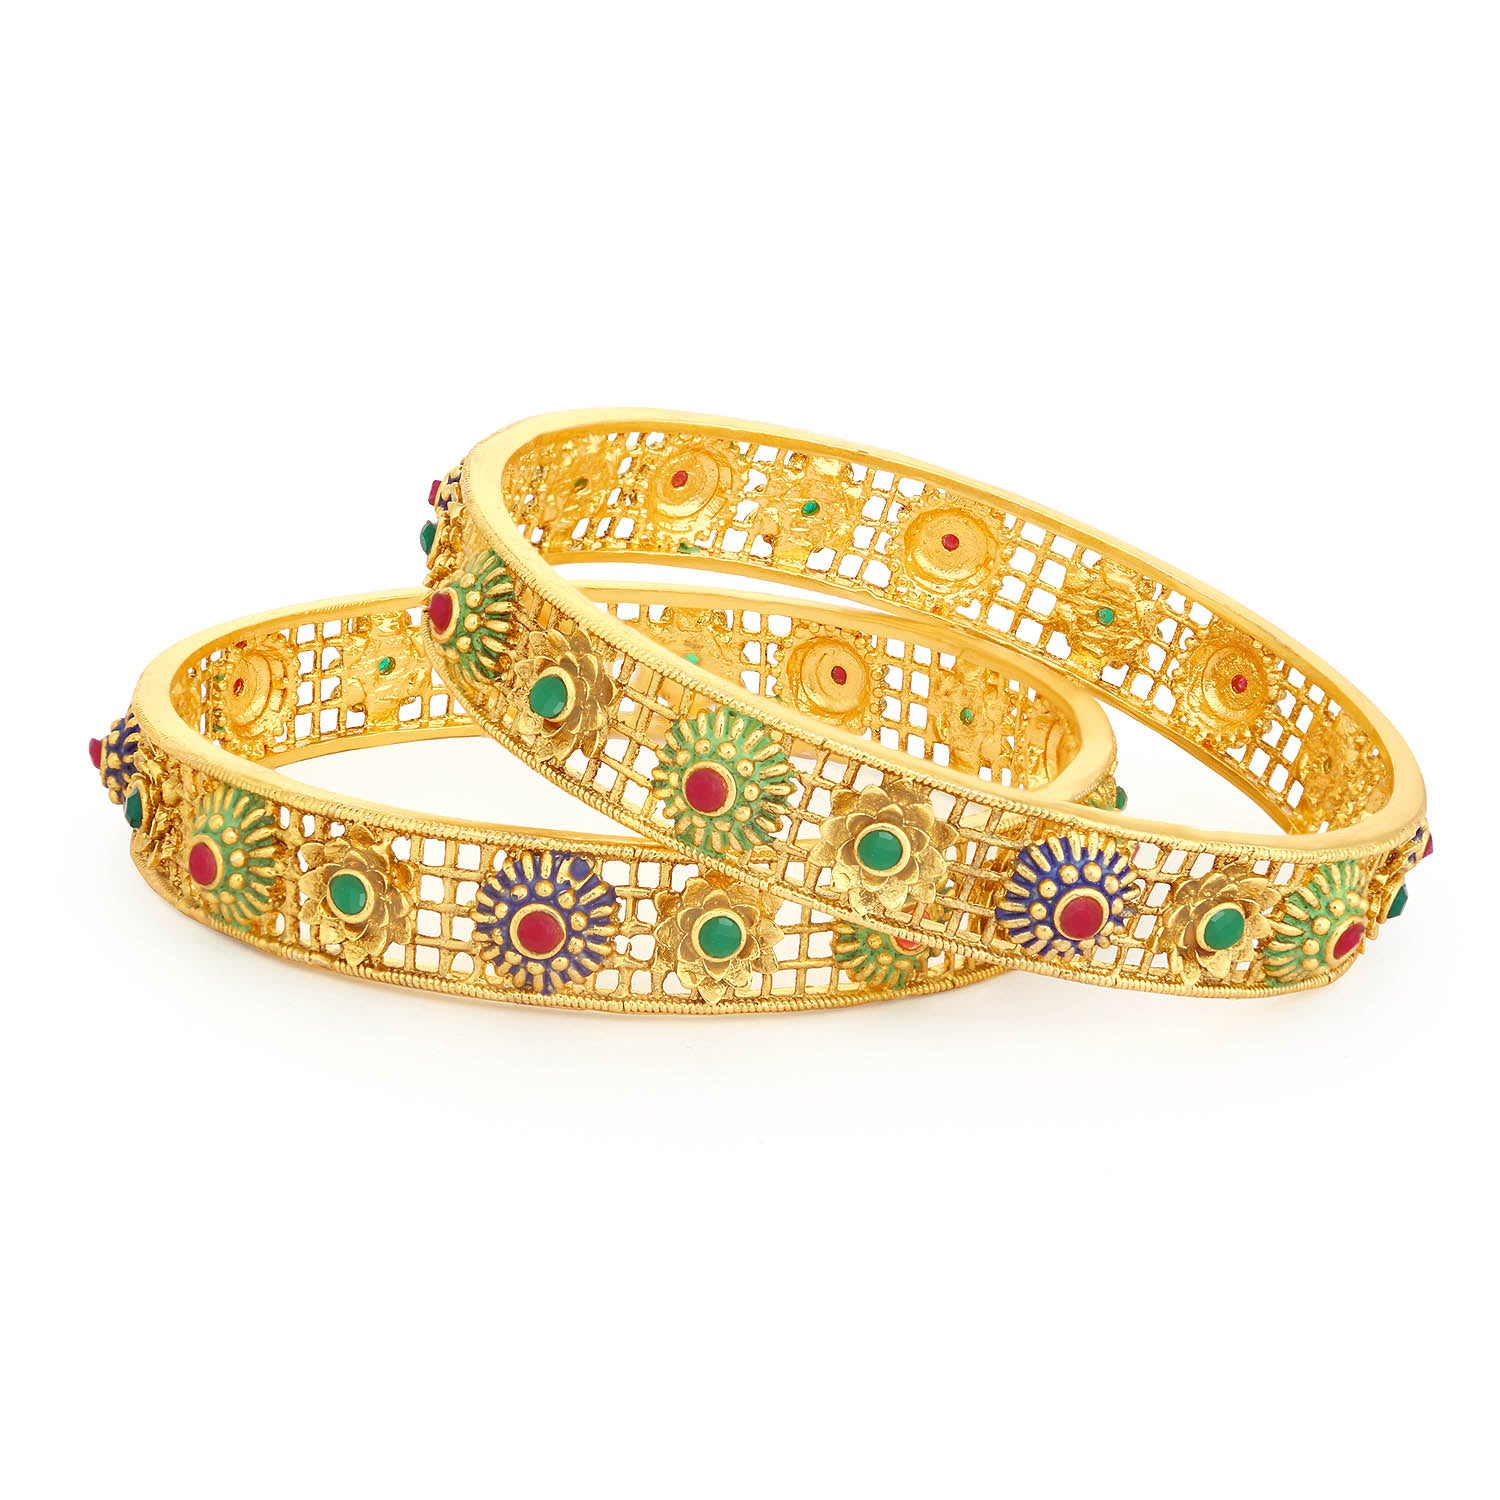 Sukkhi Spectacular Gold Plated Floral Meenakari Bangle Set For Women-SUKKHI1-Bangle